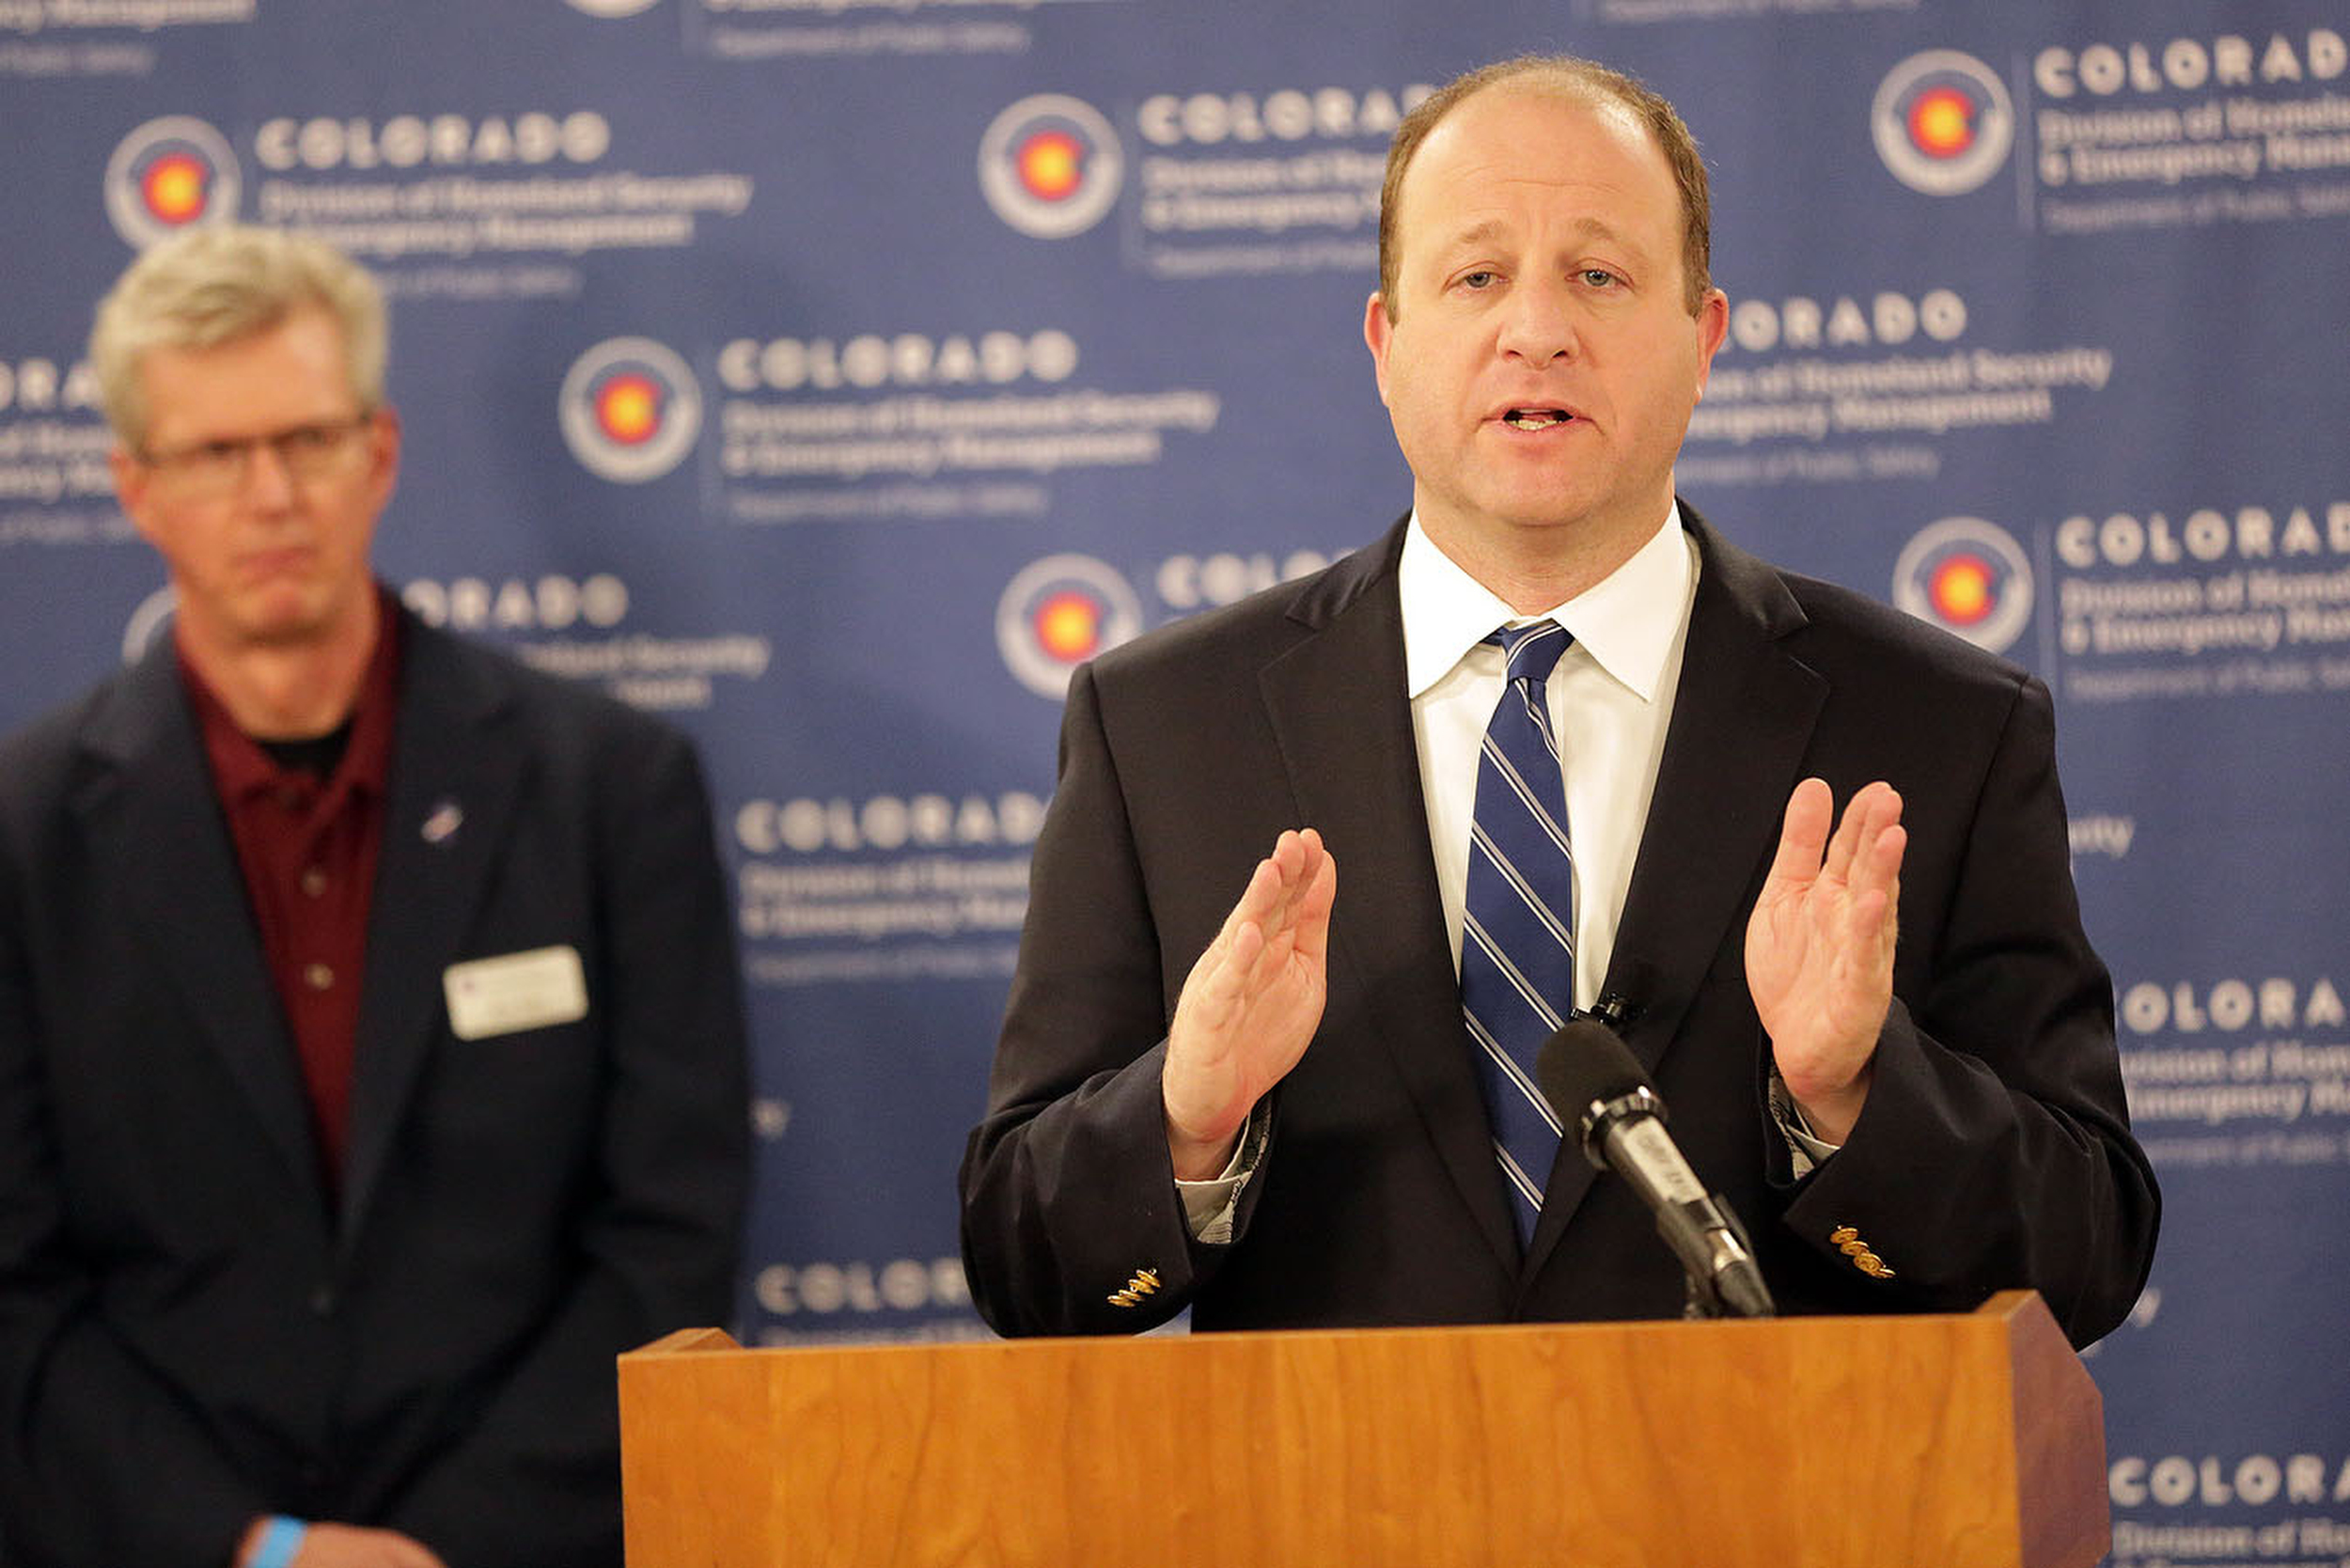 Colorado Gov. Jared Polis gestures during a press conference on March 25